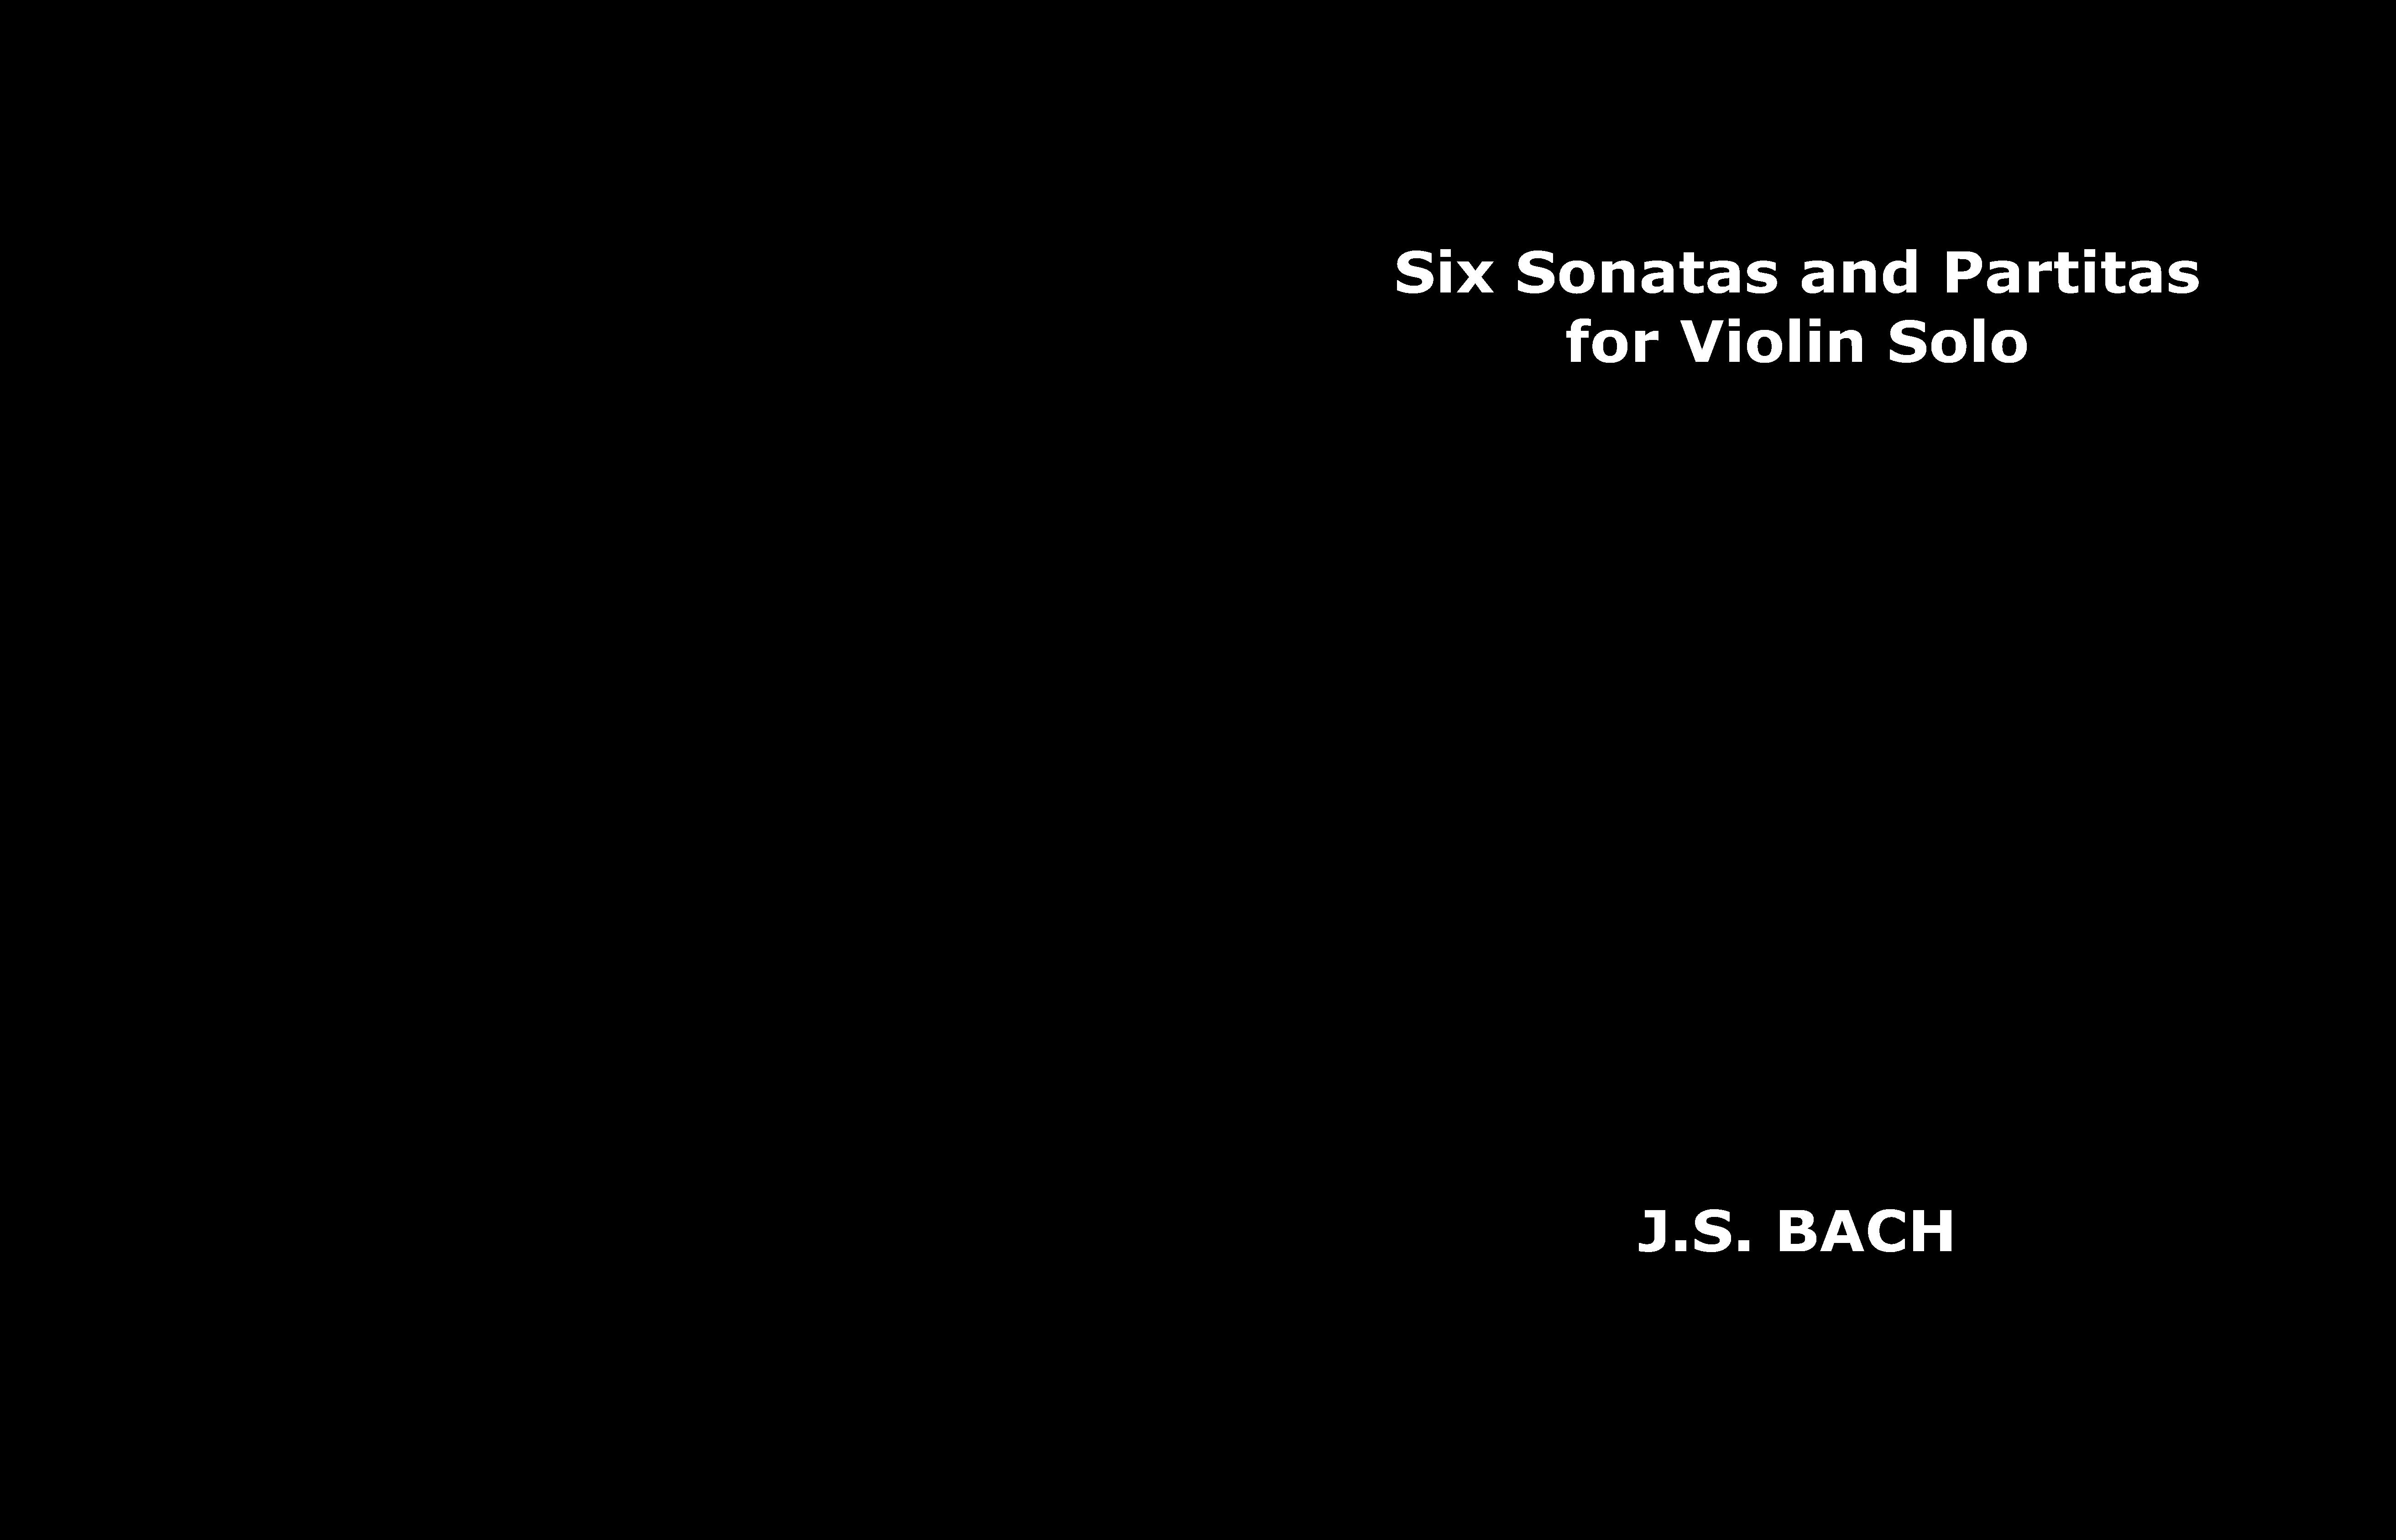 Six Sonatas and Partitas for Violin Solo cover image